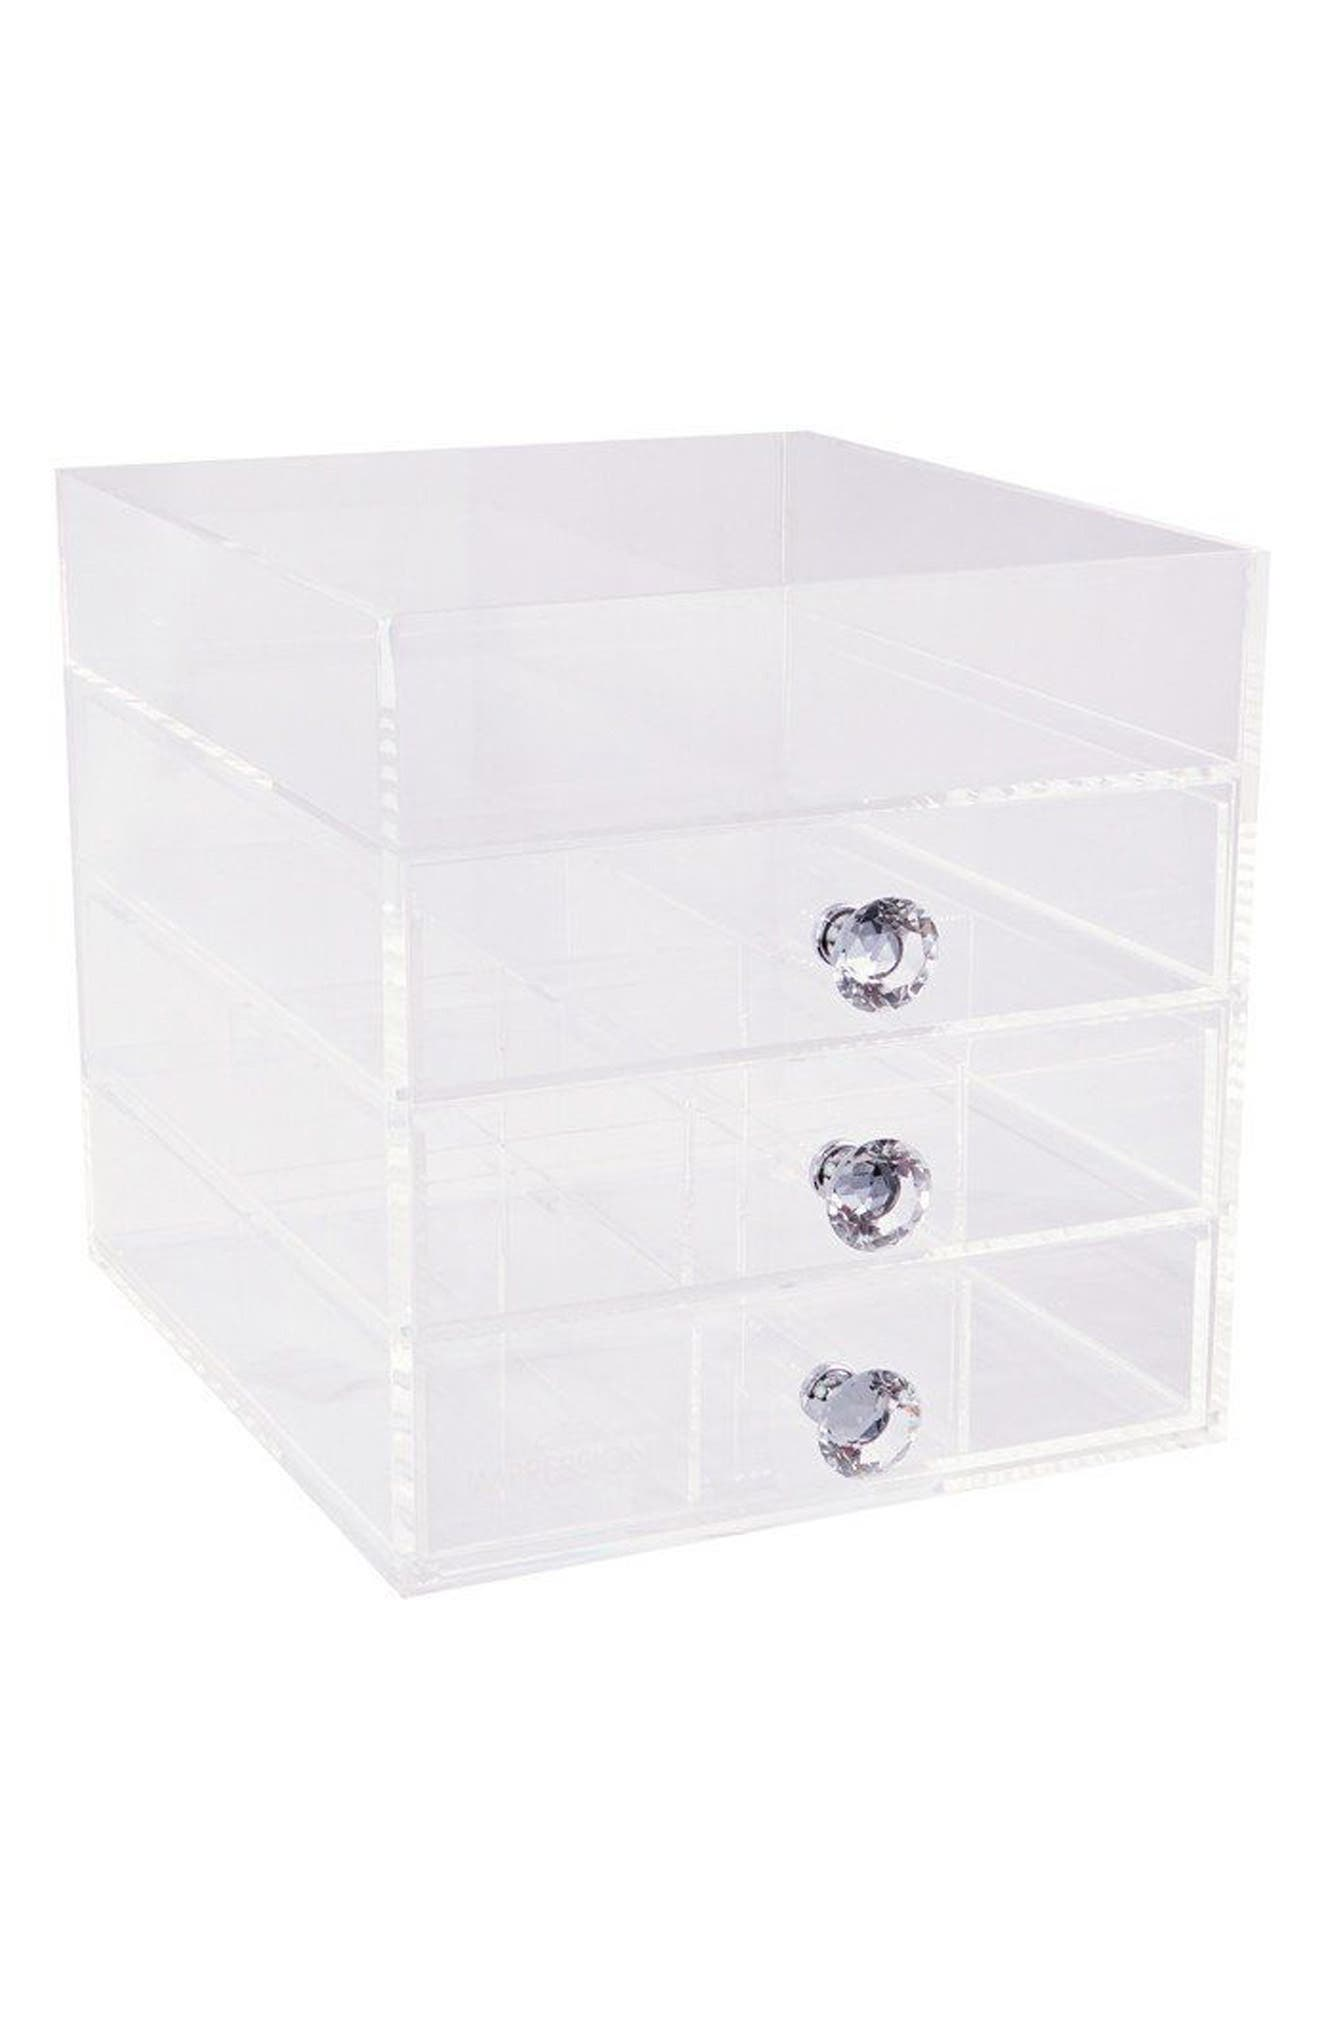 Alternate Image 1 Selected - Impressions Vanity Co. Diamond Collection 4-Drawer Acrylic Organizer